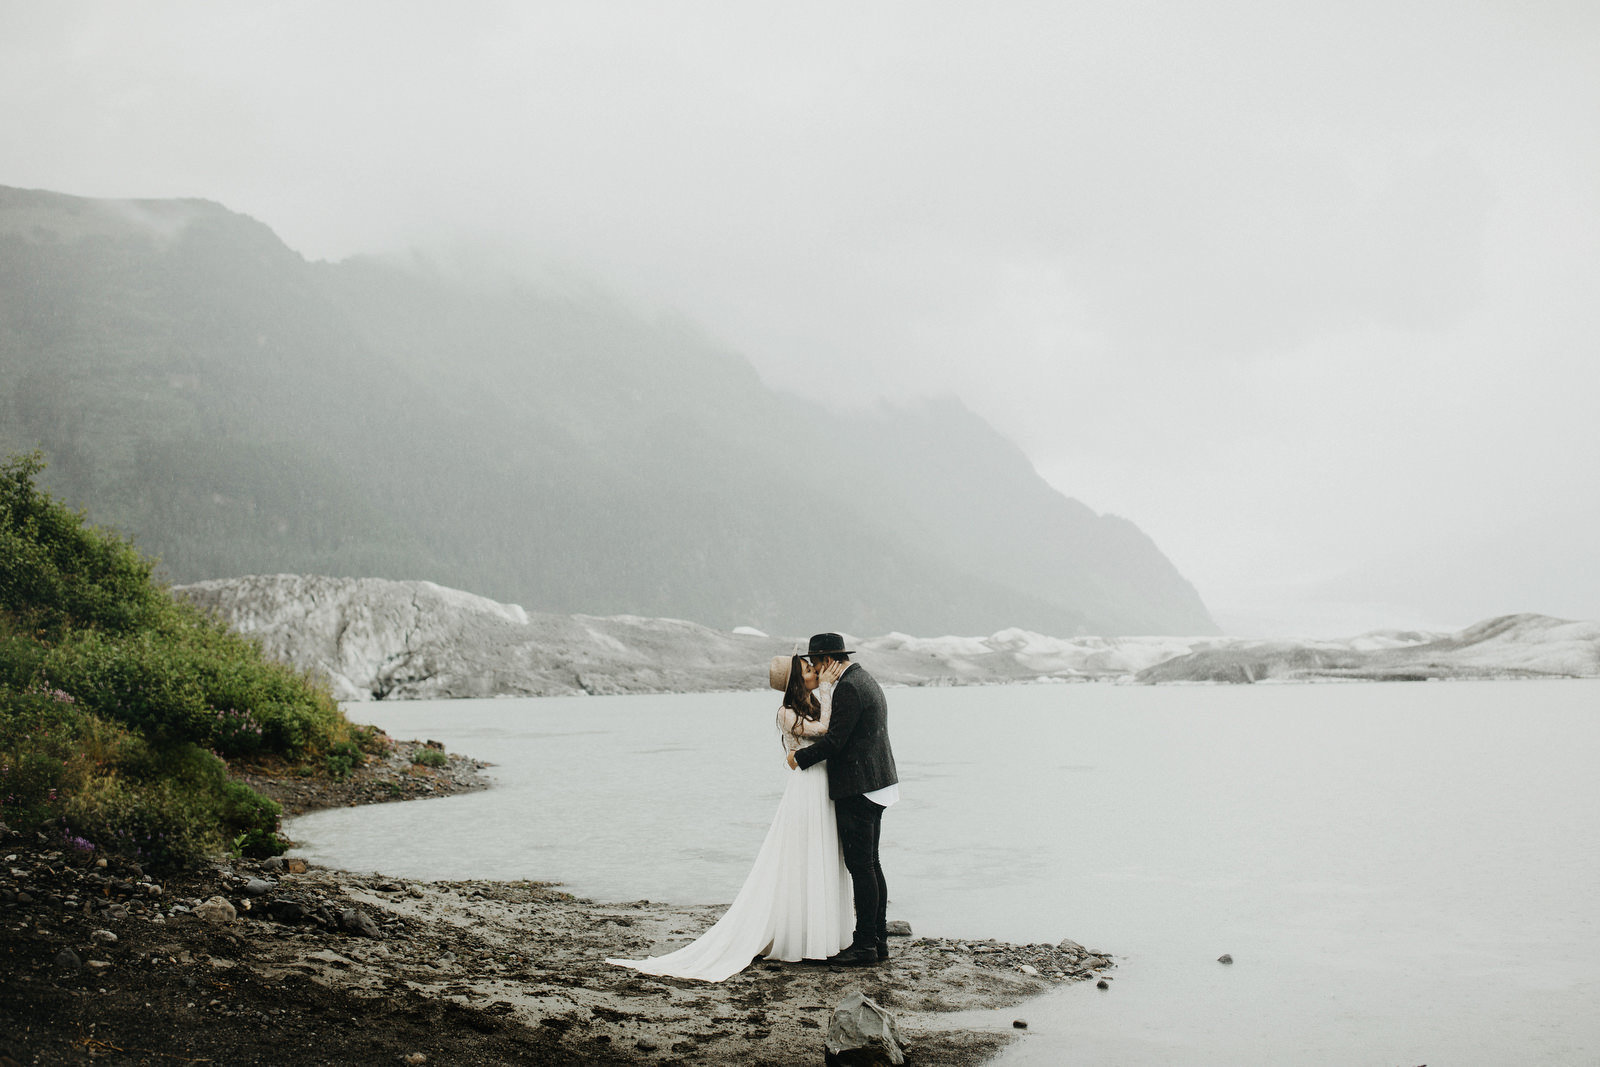 athena-and-camron-alaska-elopement-wedding-inspiration-india-earl-athena-grace-glacier-lagoon-wedding74